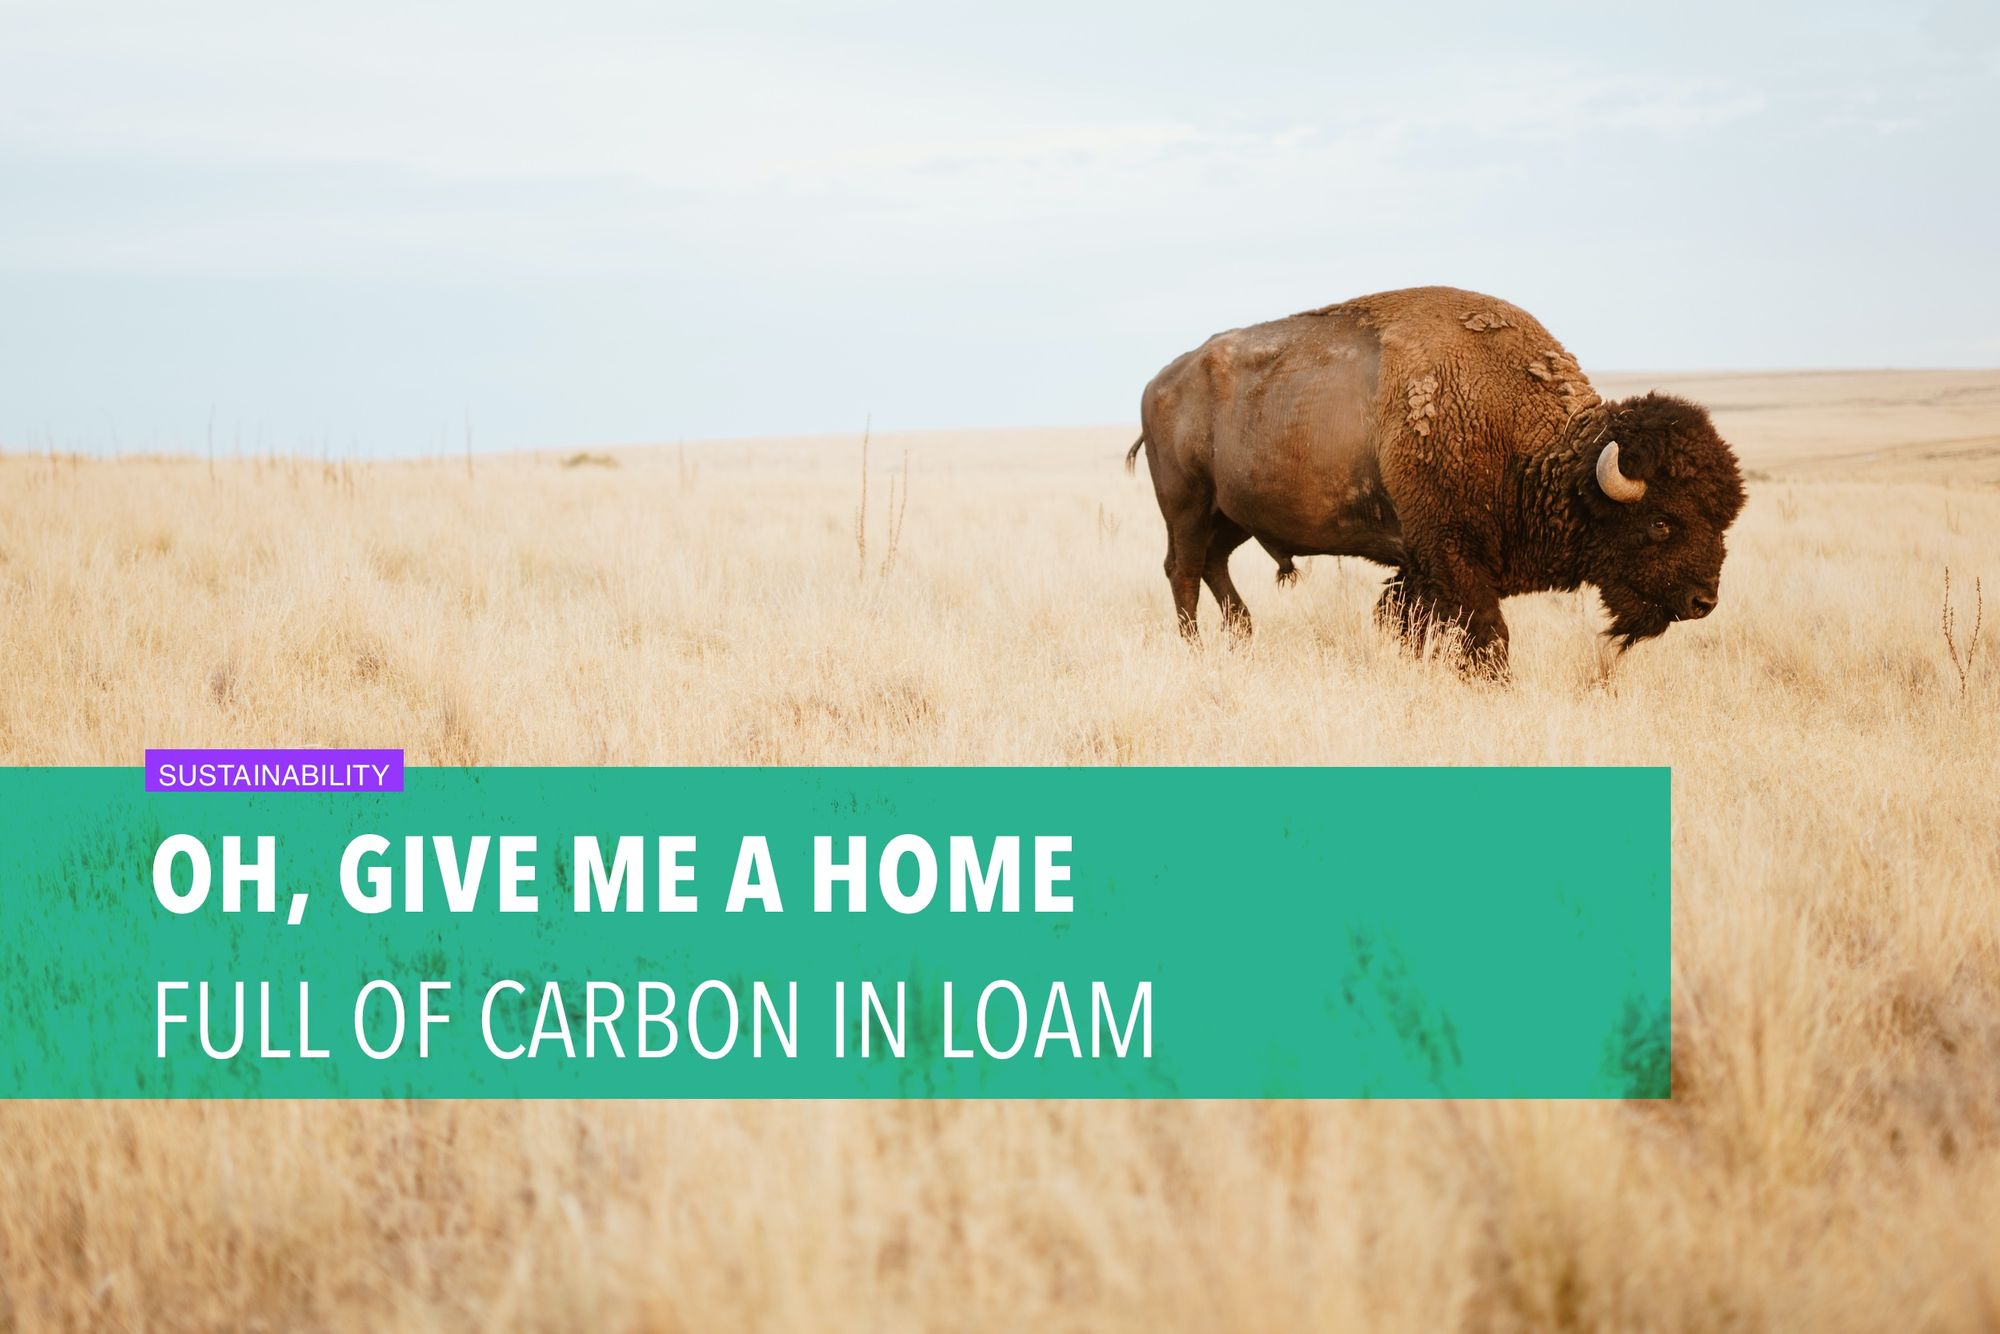 Oh, give me a home full of carbon in loam